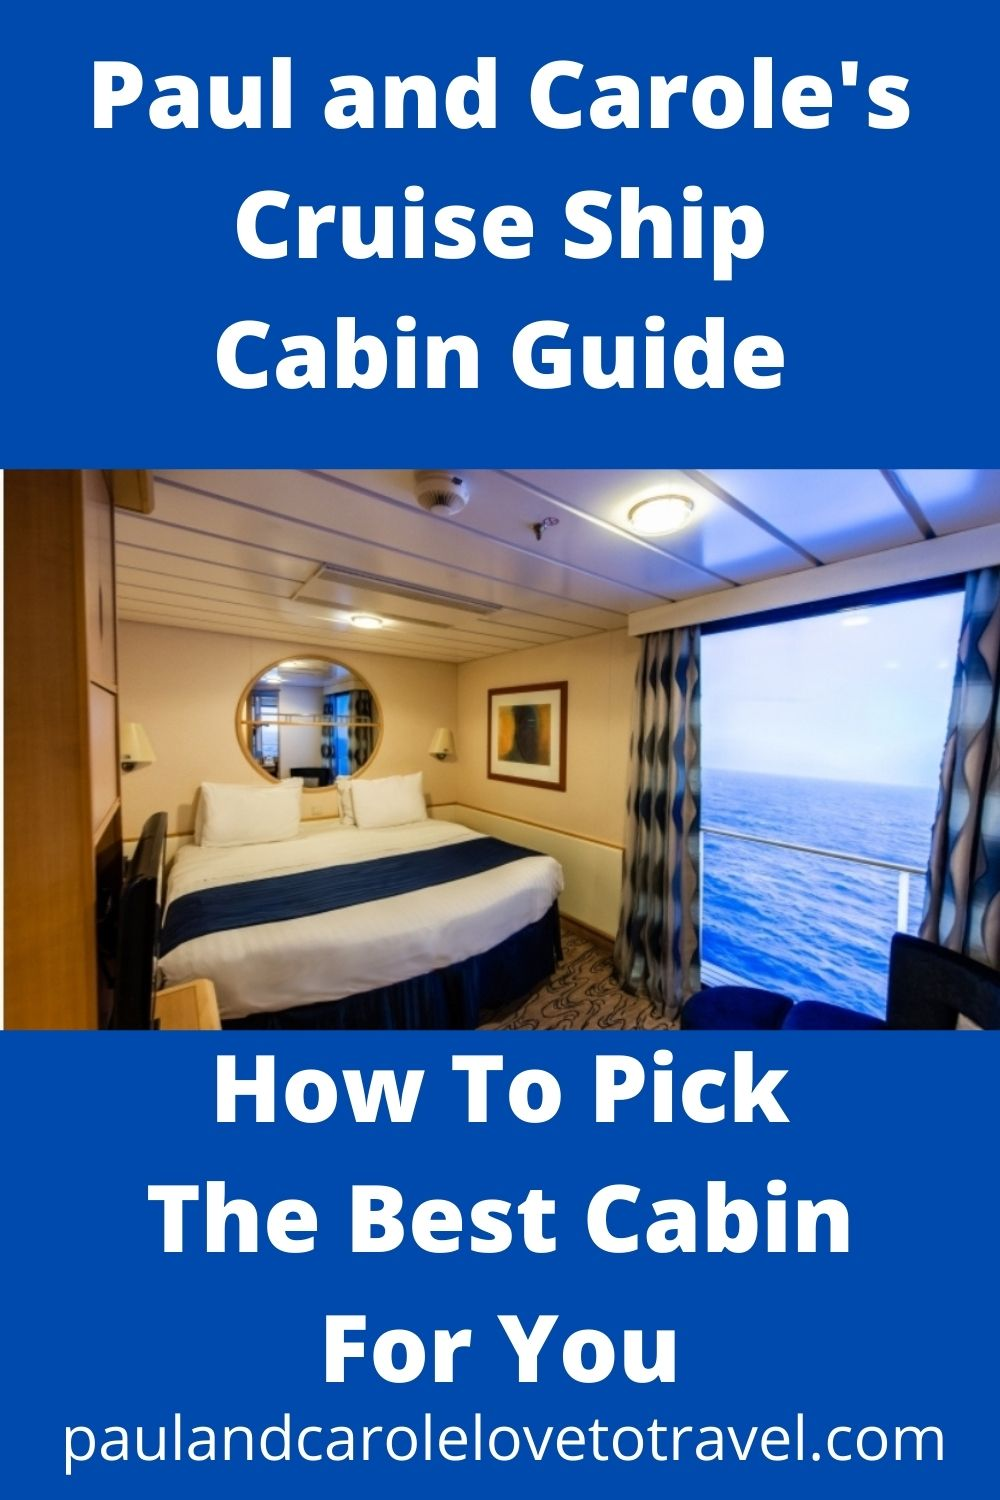 Cruise Ship Cabin Guide How to pick the best one for you!